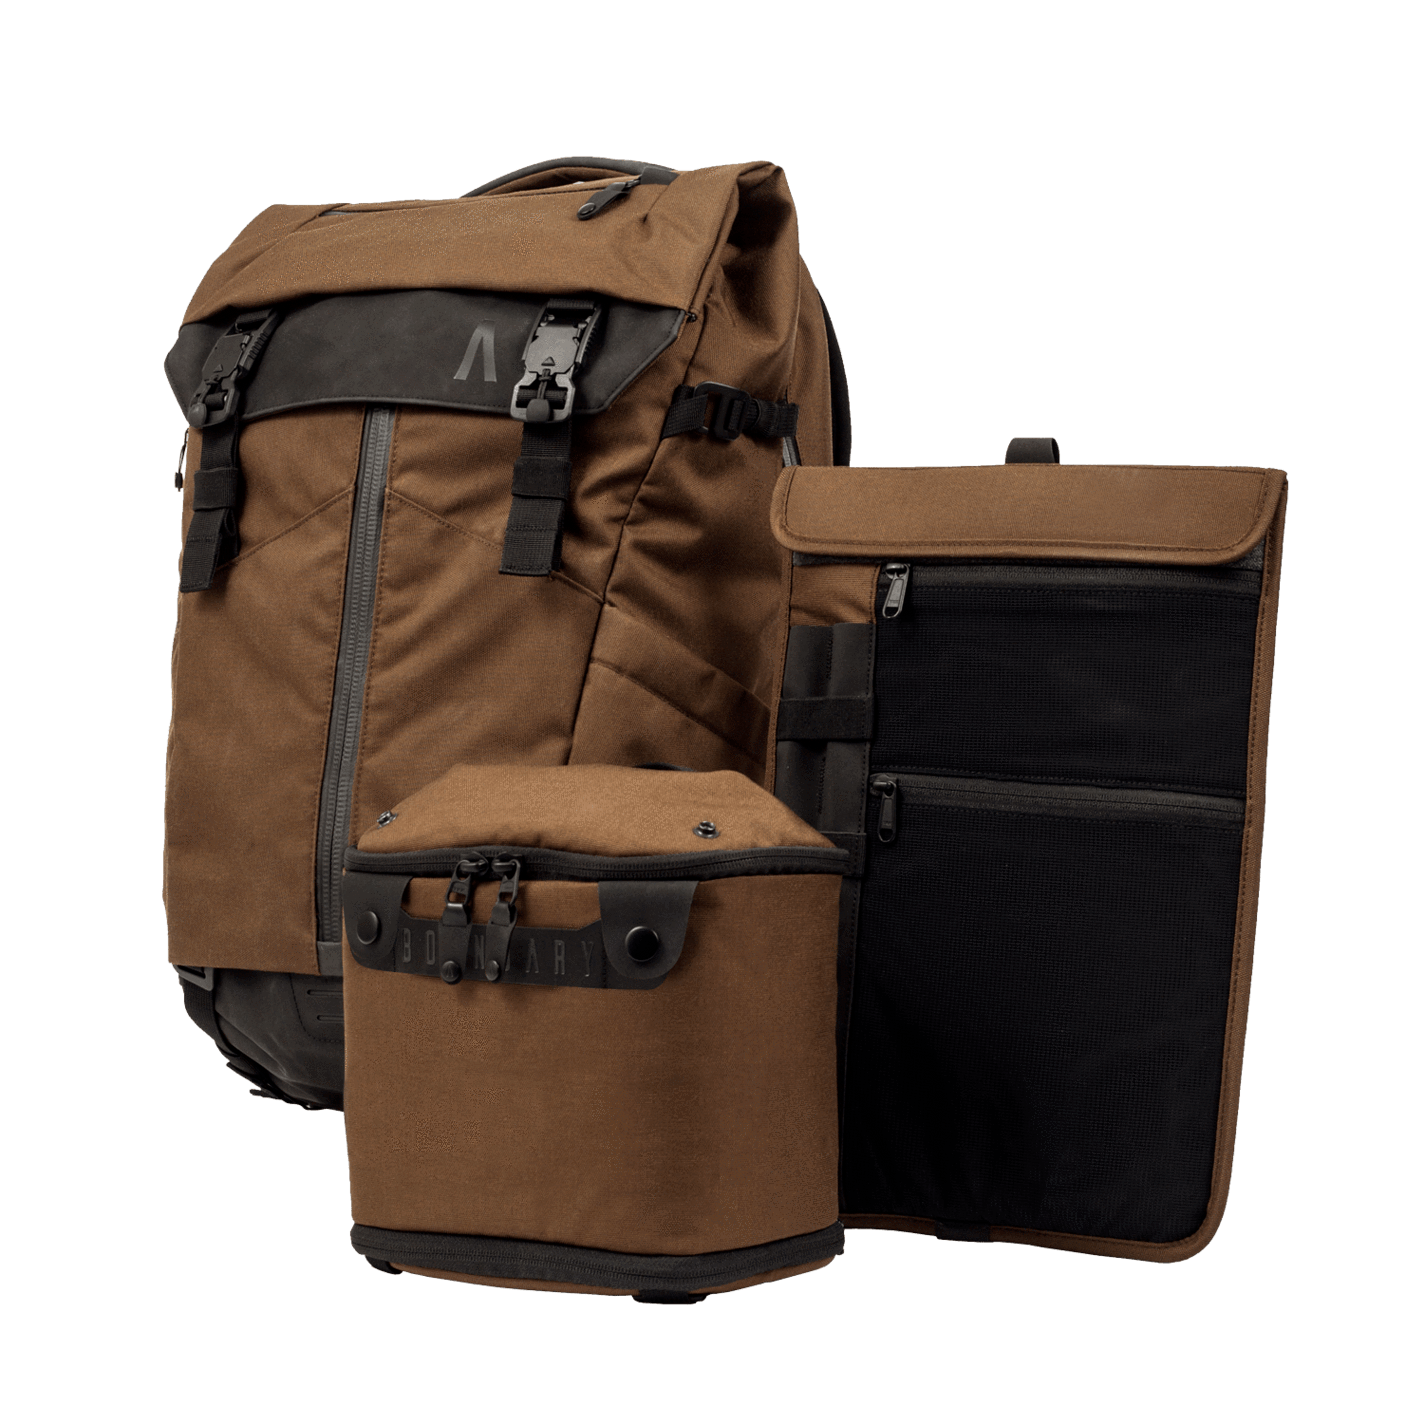 prima system boundary supply backpack review